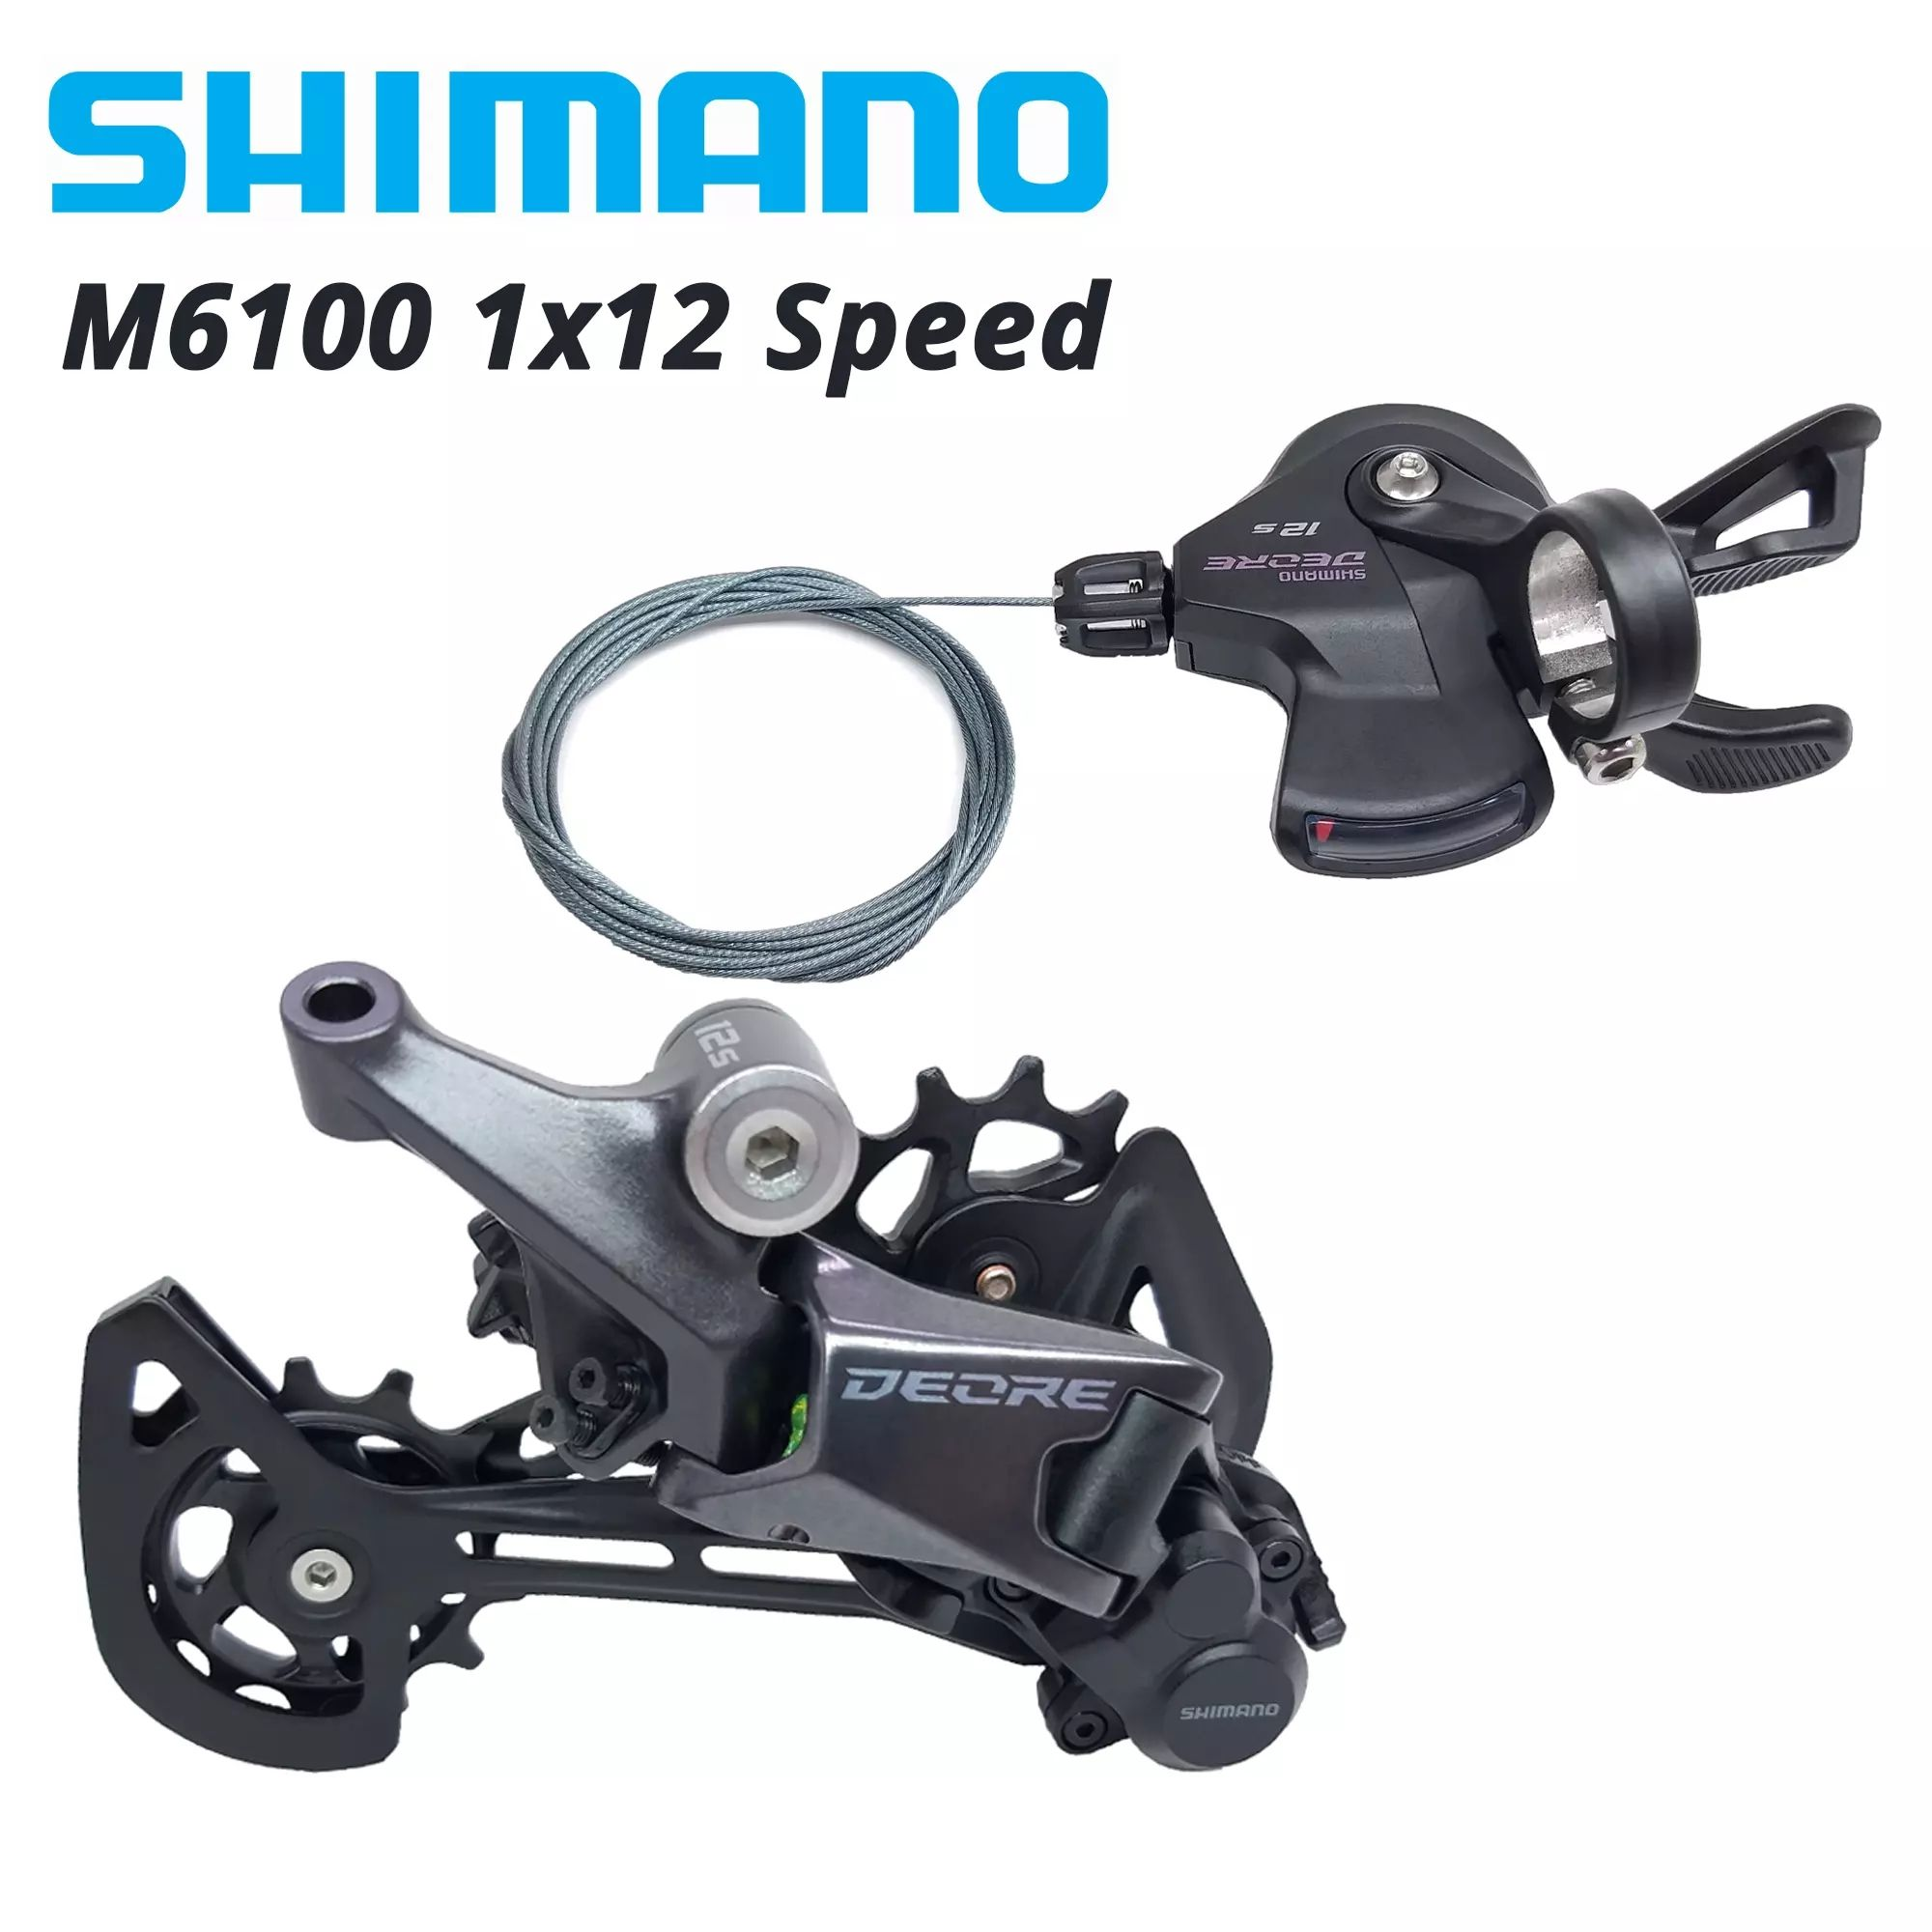 SHIMANO DEORE M6100 12s Groupset SL M6100 SHIFT LEVER + RD M6100 GS REAR DERAILLEUR 12 Speed 12S SHIFTER SGS basic M7100 M7120